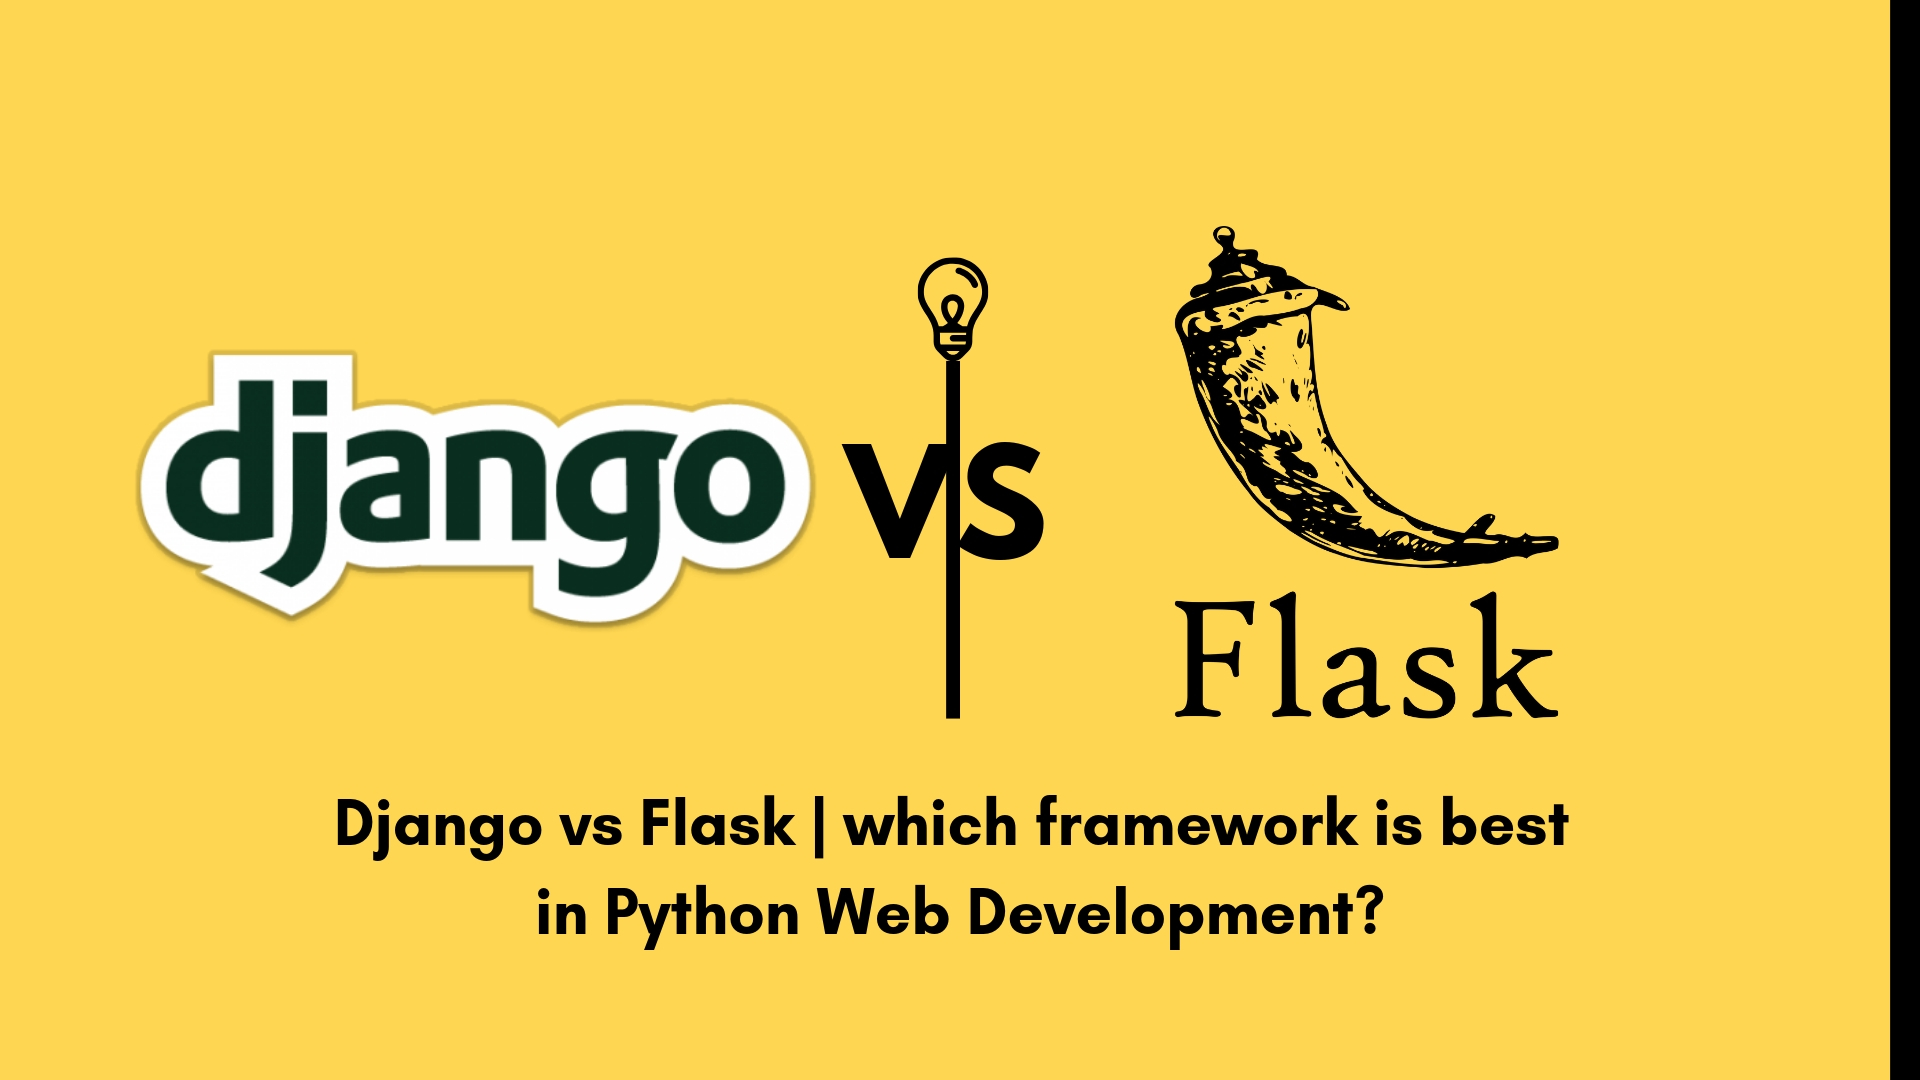 Django vs Flask OR which framework is best in Python Web Development?